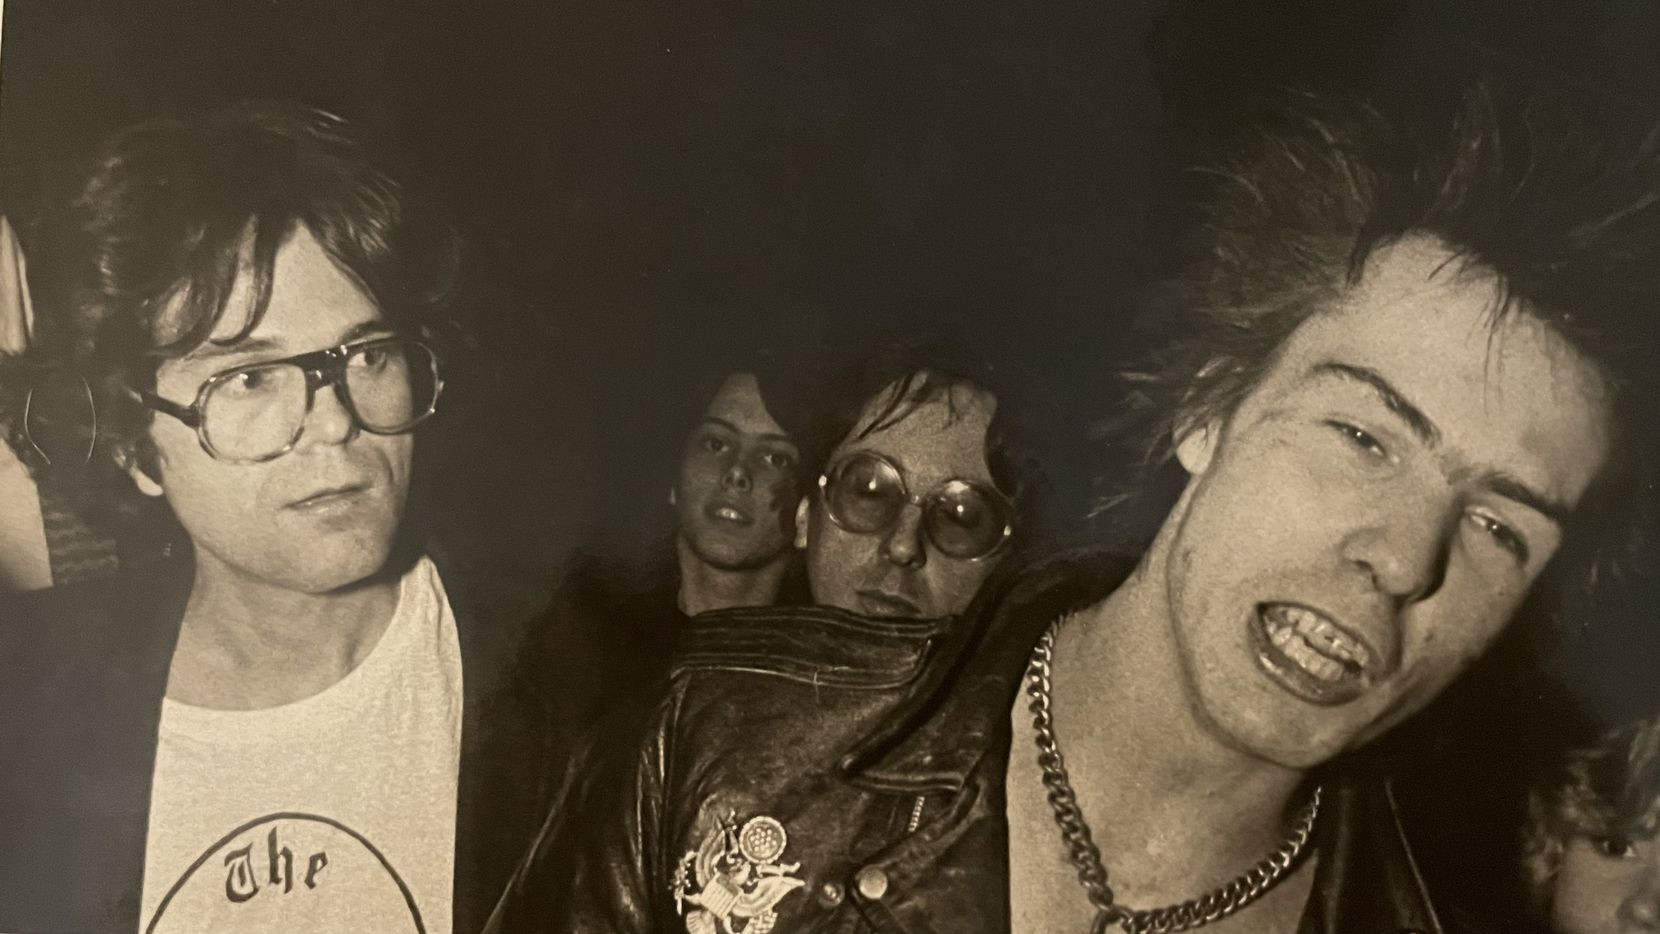 Mark Sims, left, was one of the people who attended the Sex Pistols concert in Dallas on Jan. 10, 1978. At right is Sex Pistols band member Sid Vicious. Photograph courtesy of Randy Eli Grothe.